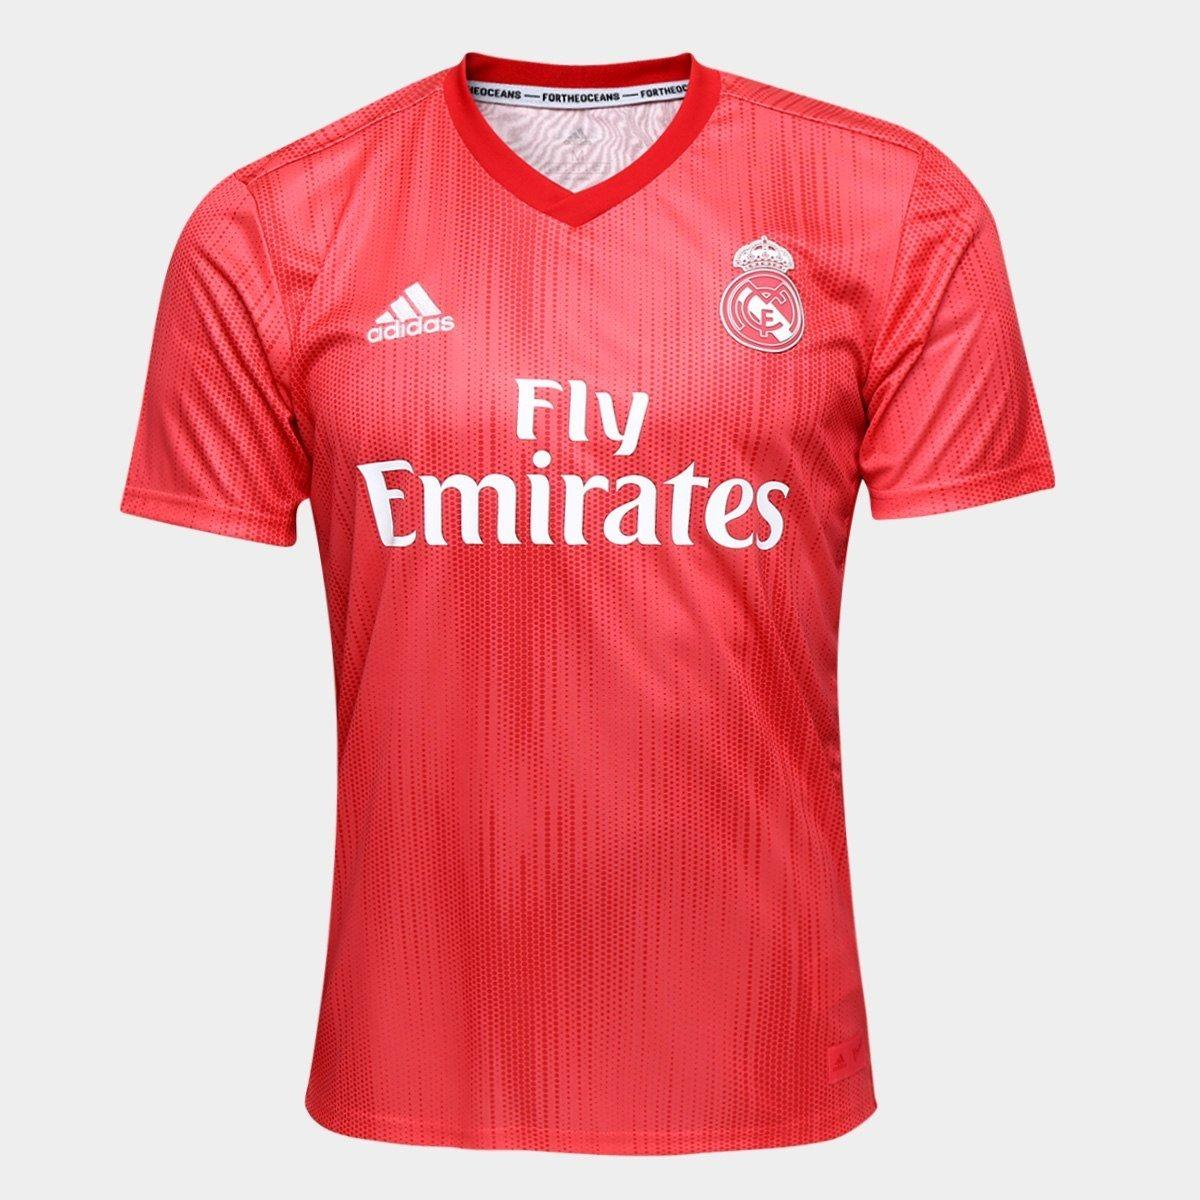 148833f7b55 Jersey Price In Bangladesh - Buy Football Jerseys From Daraz.com.bd